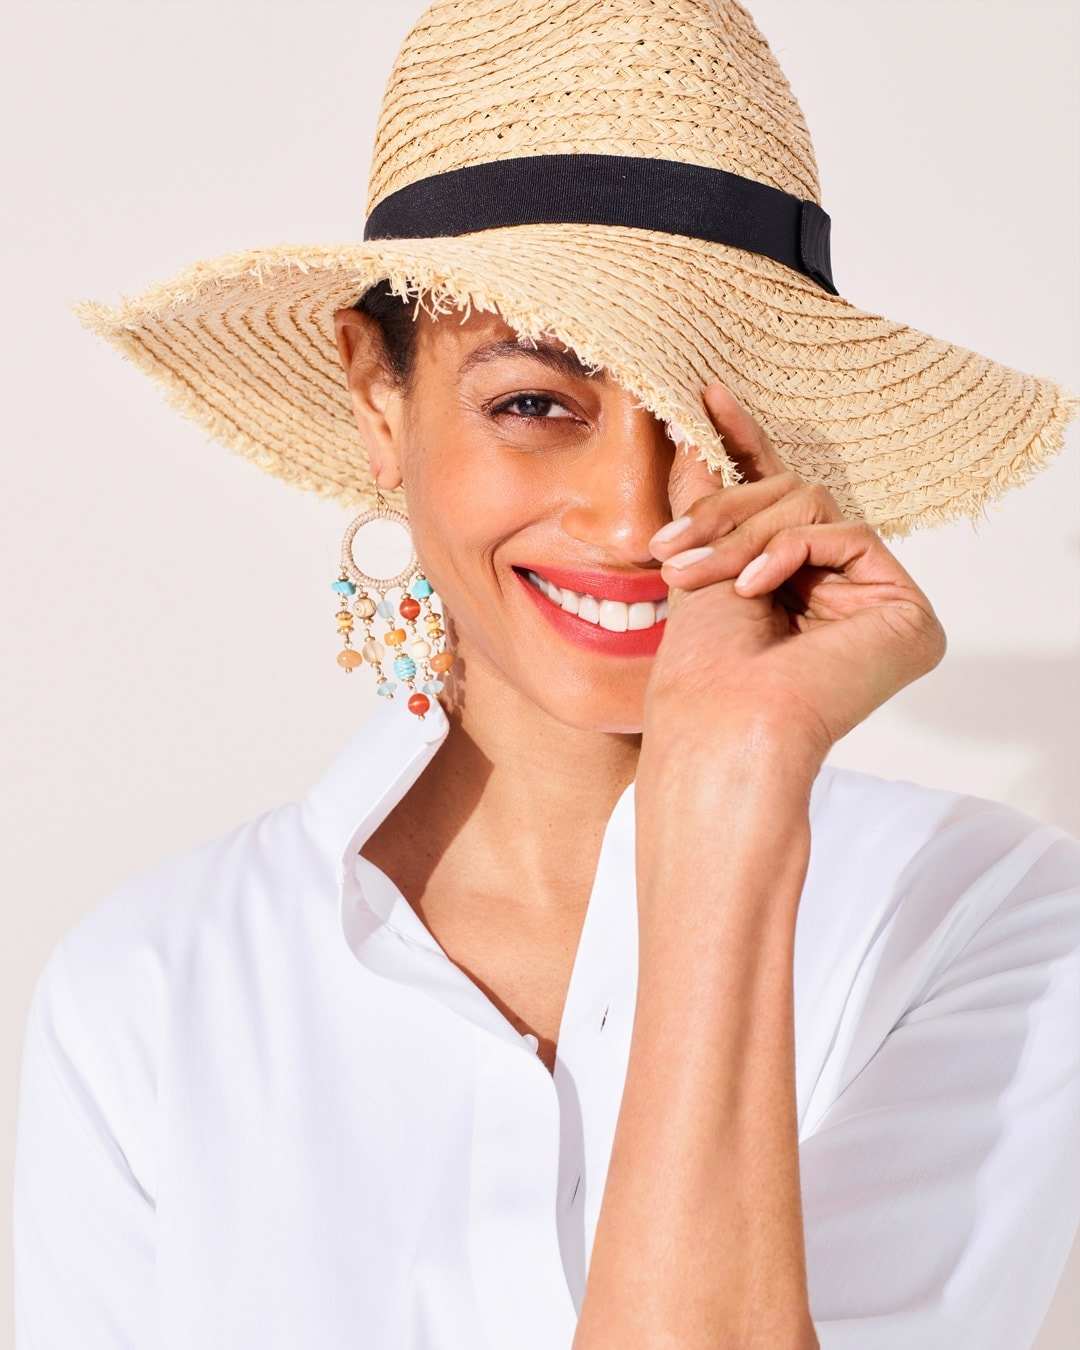 Woman wearing a Chico's straw hat